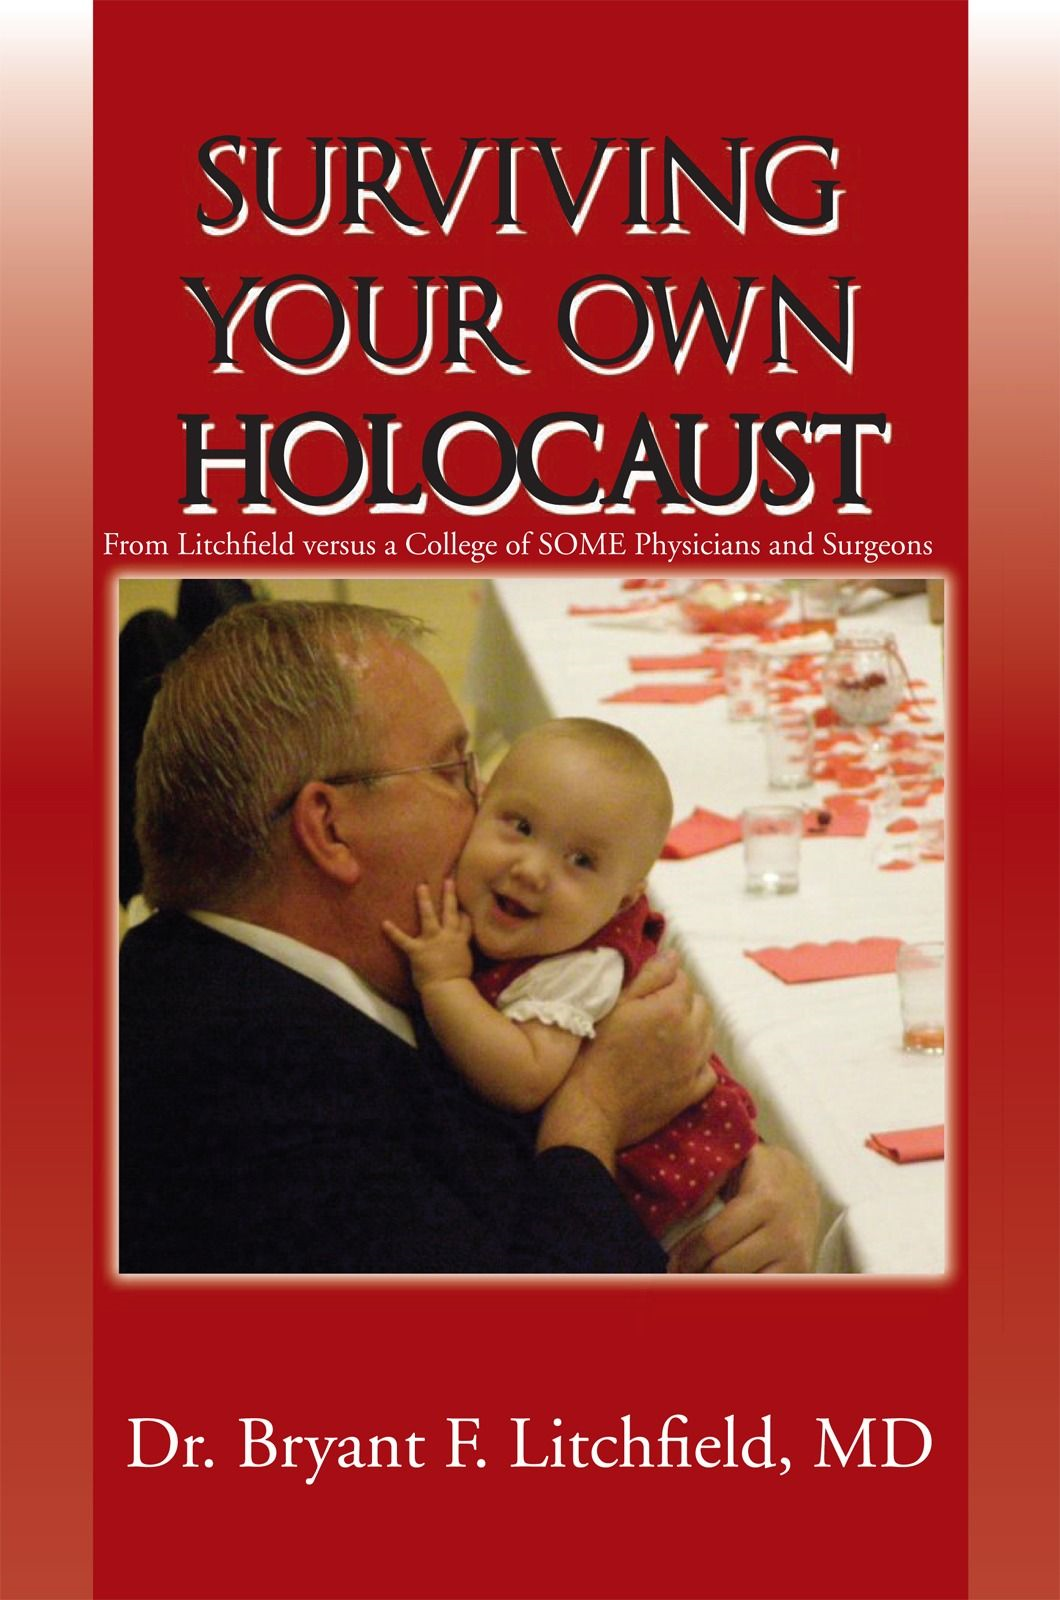 SURVIVING YOUR OWN HOLOCAUST By: MD Dr. Bryant F. Litchfield